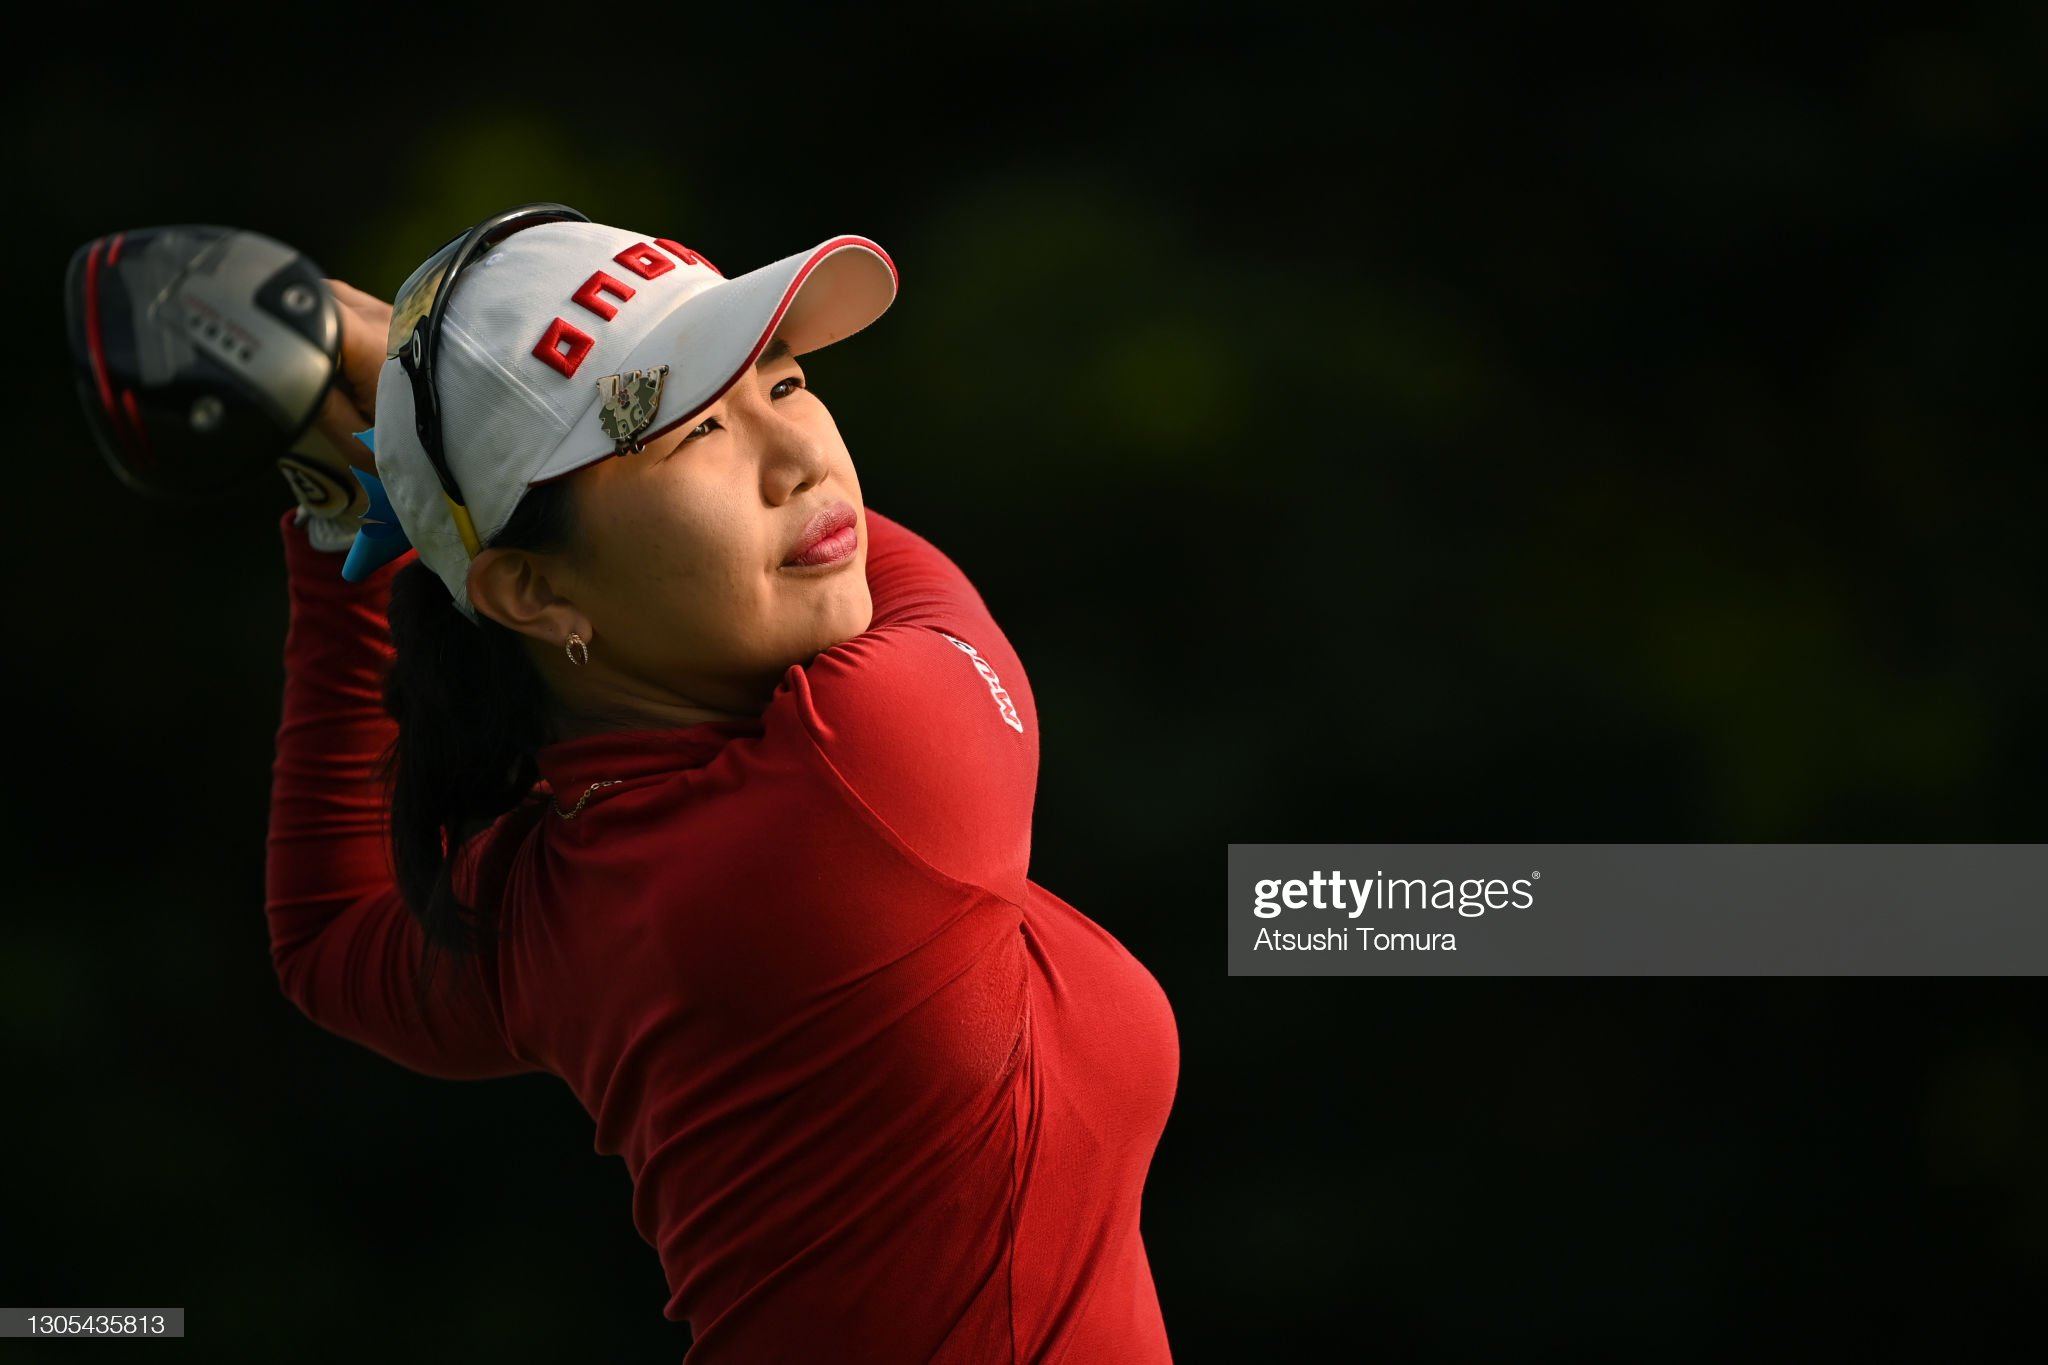 https://media.gettyimages.com/photos/aureum-hwang-of-south-korea-hits-her-tee-shot-on-the-18th-hole-during-picture-id1305435813?s=2048x2048